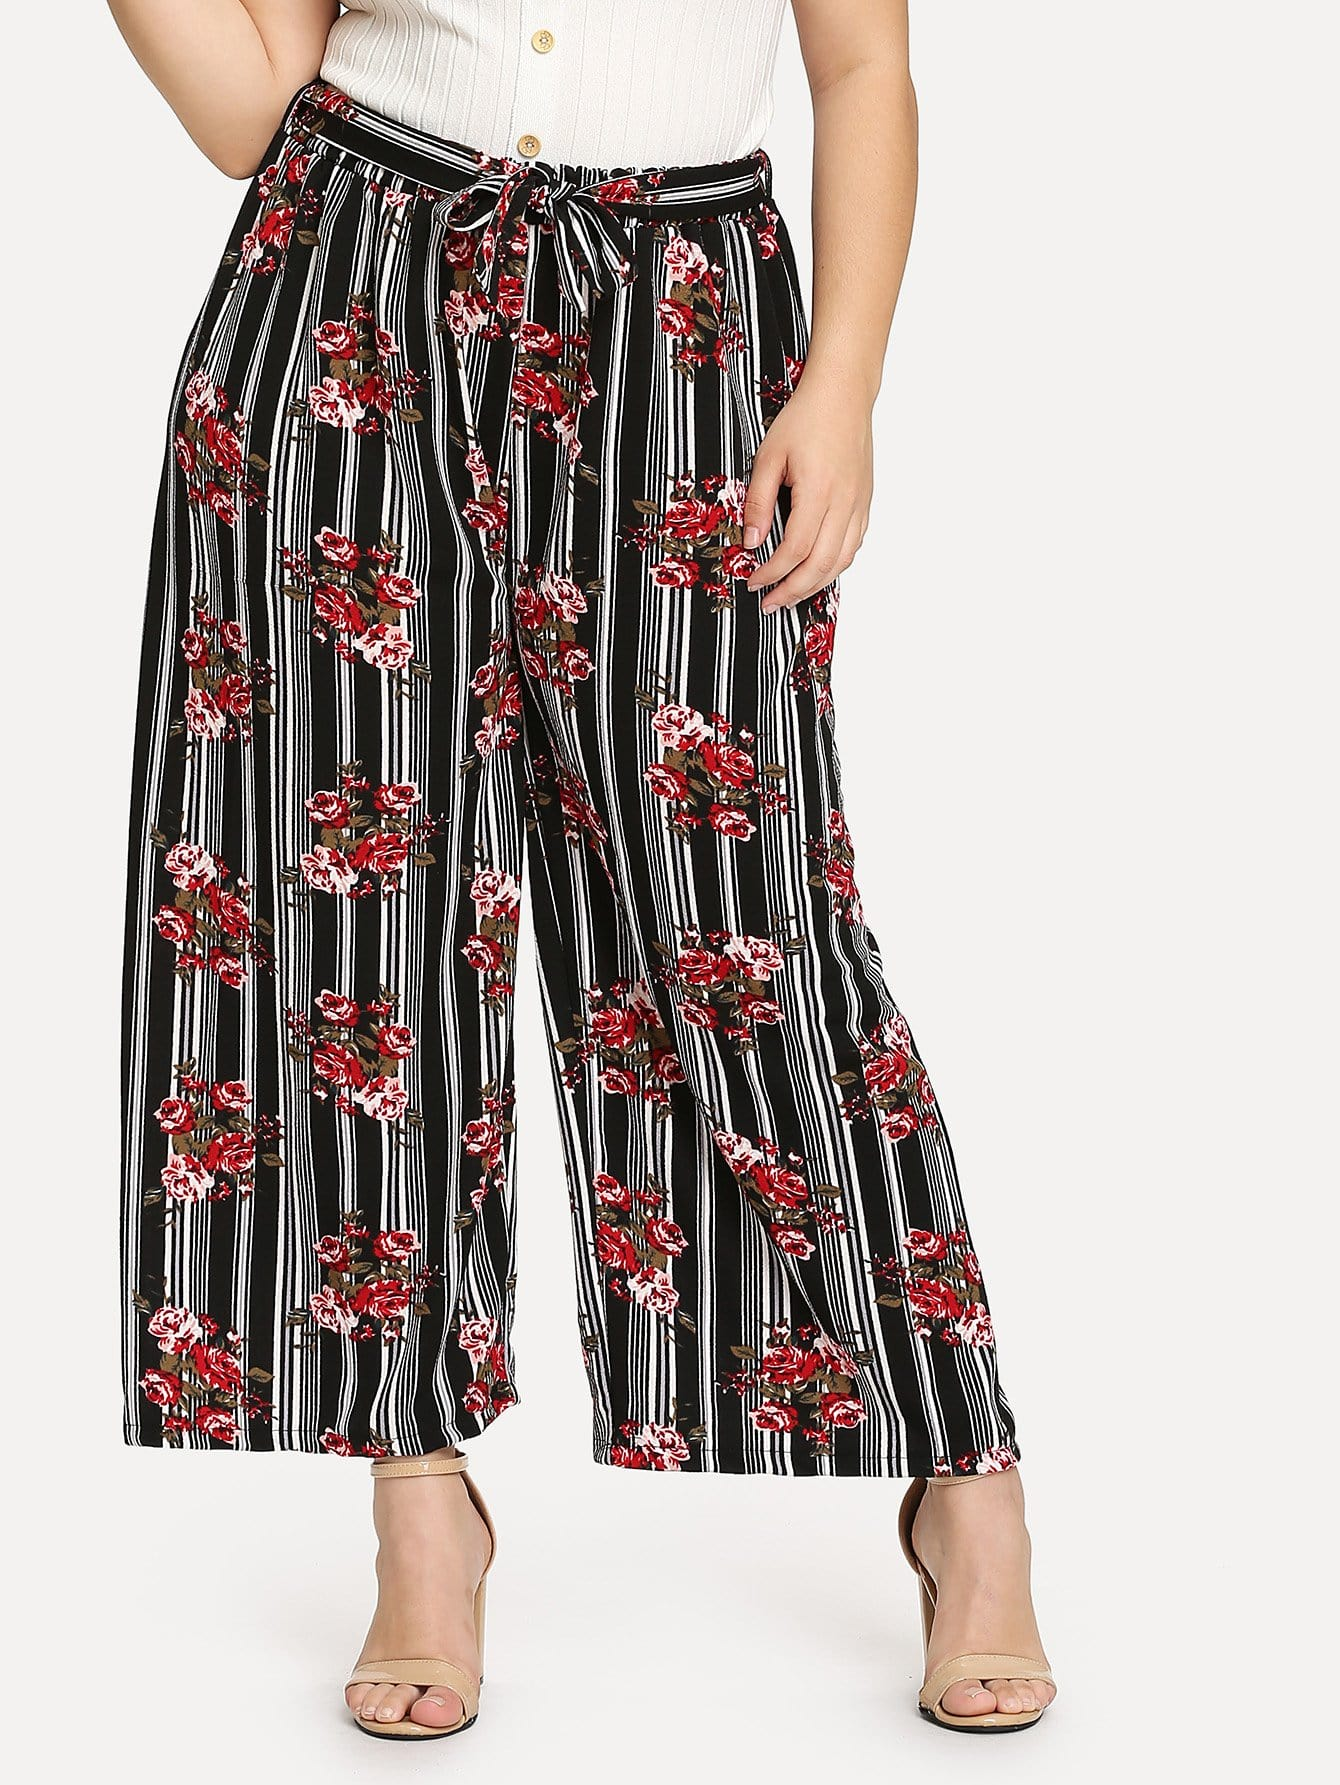 Self Belted Floral & Striped Palazzo Pants self belted skirt palazzo pants